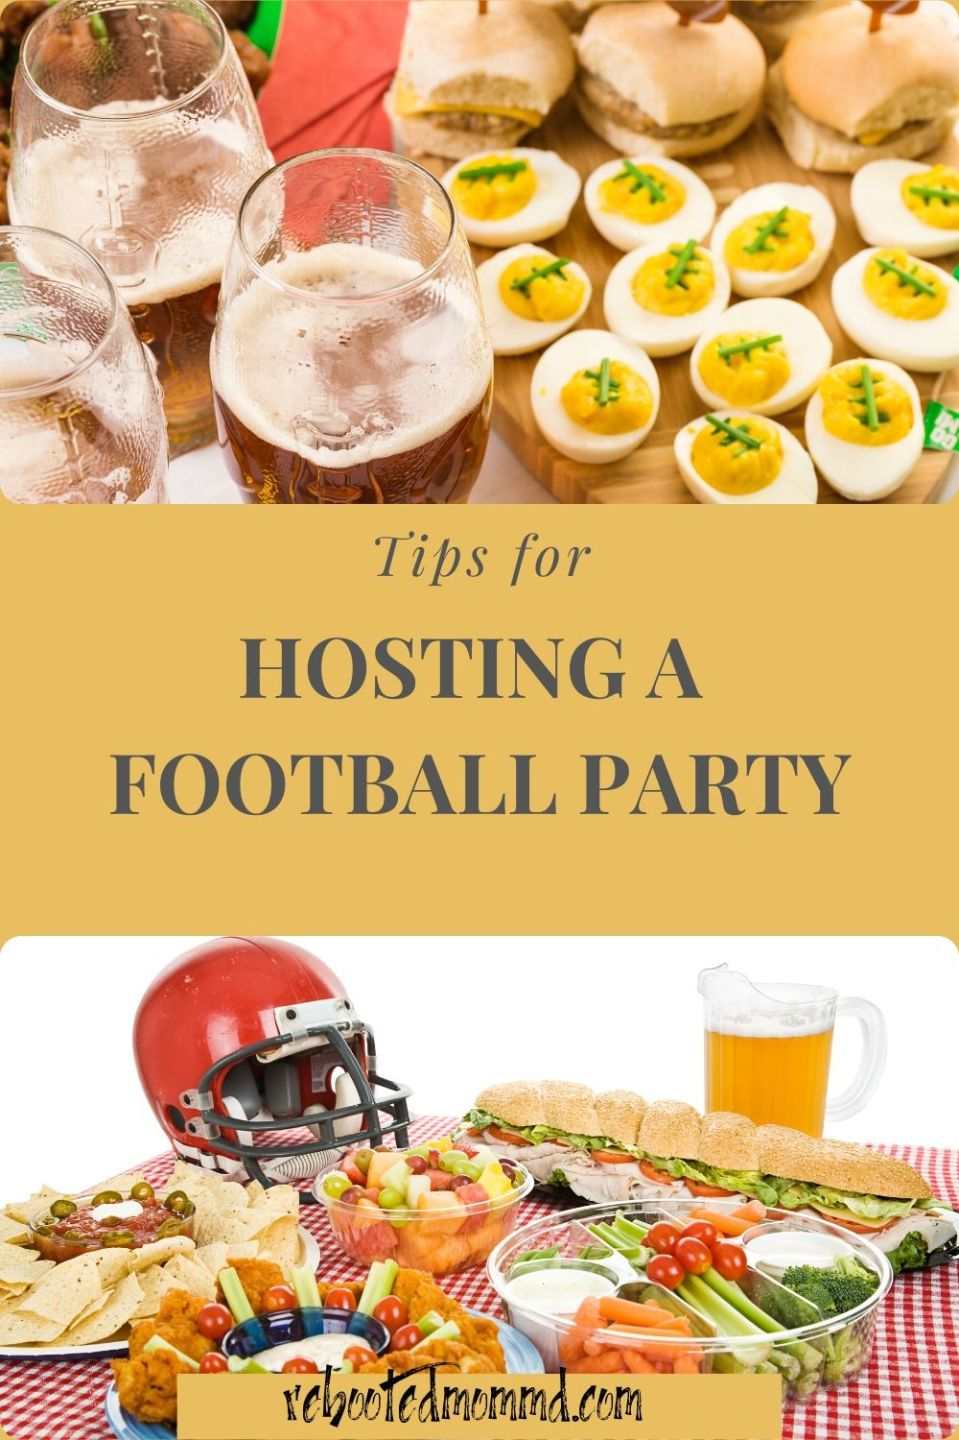 Hosting a Game Day Party? Here are Few Tips...